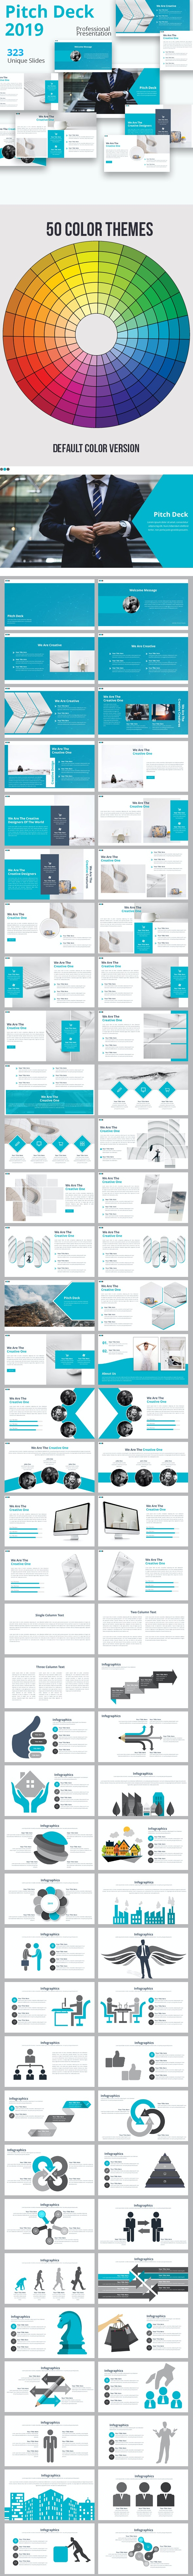 Pitch Deck 2019 Powerpoint Presentation Template - Business PowerPoint Templates